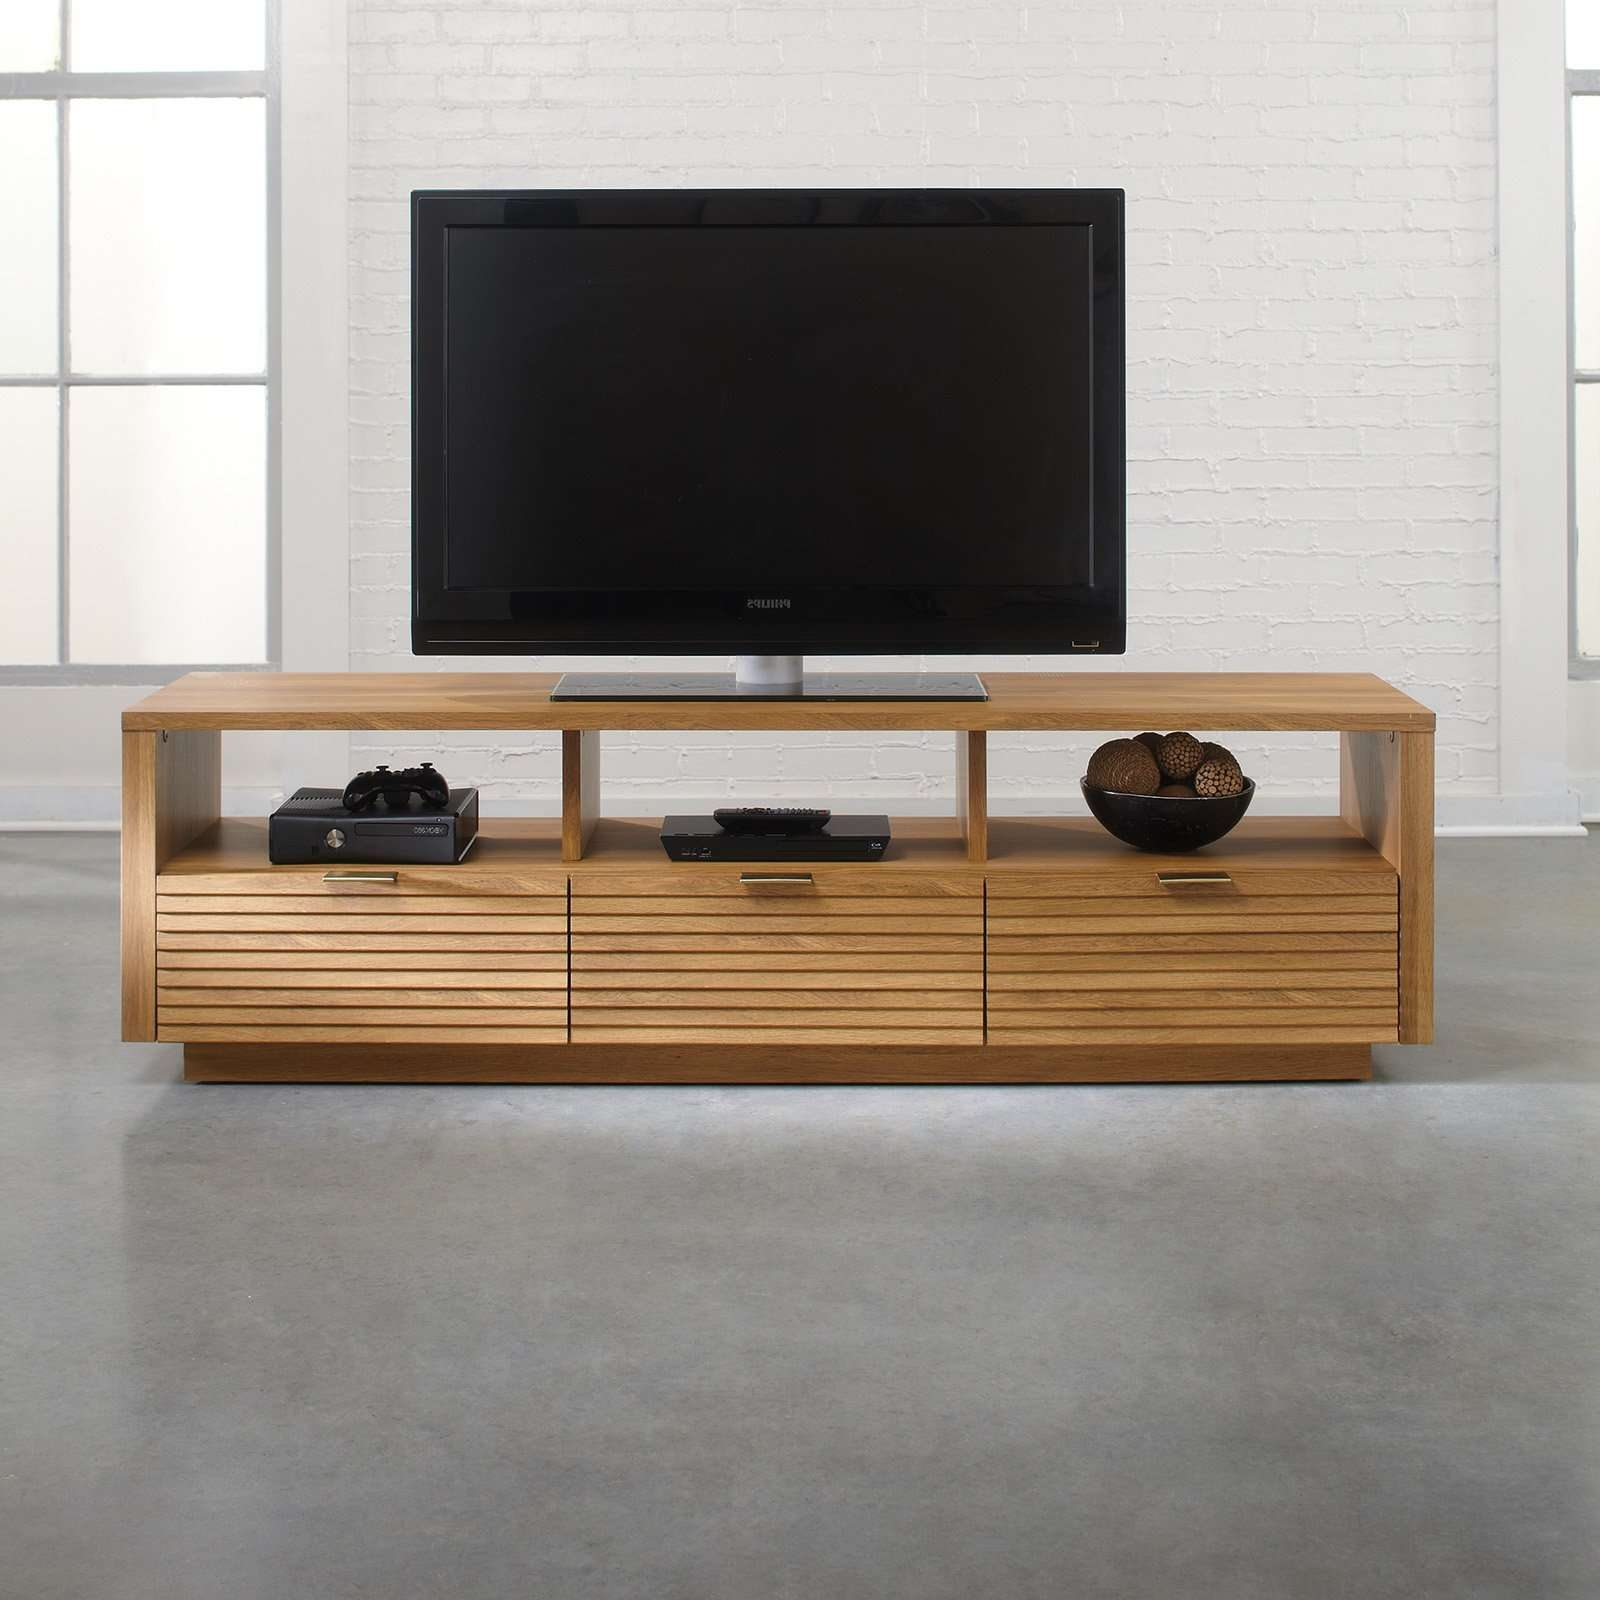 Inspirational Tv Stand Oak 95 In Simple Home Decoration Ideas With With Regard To Low Oak Tv Stands (View 20 of 20)